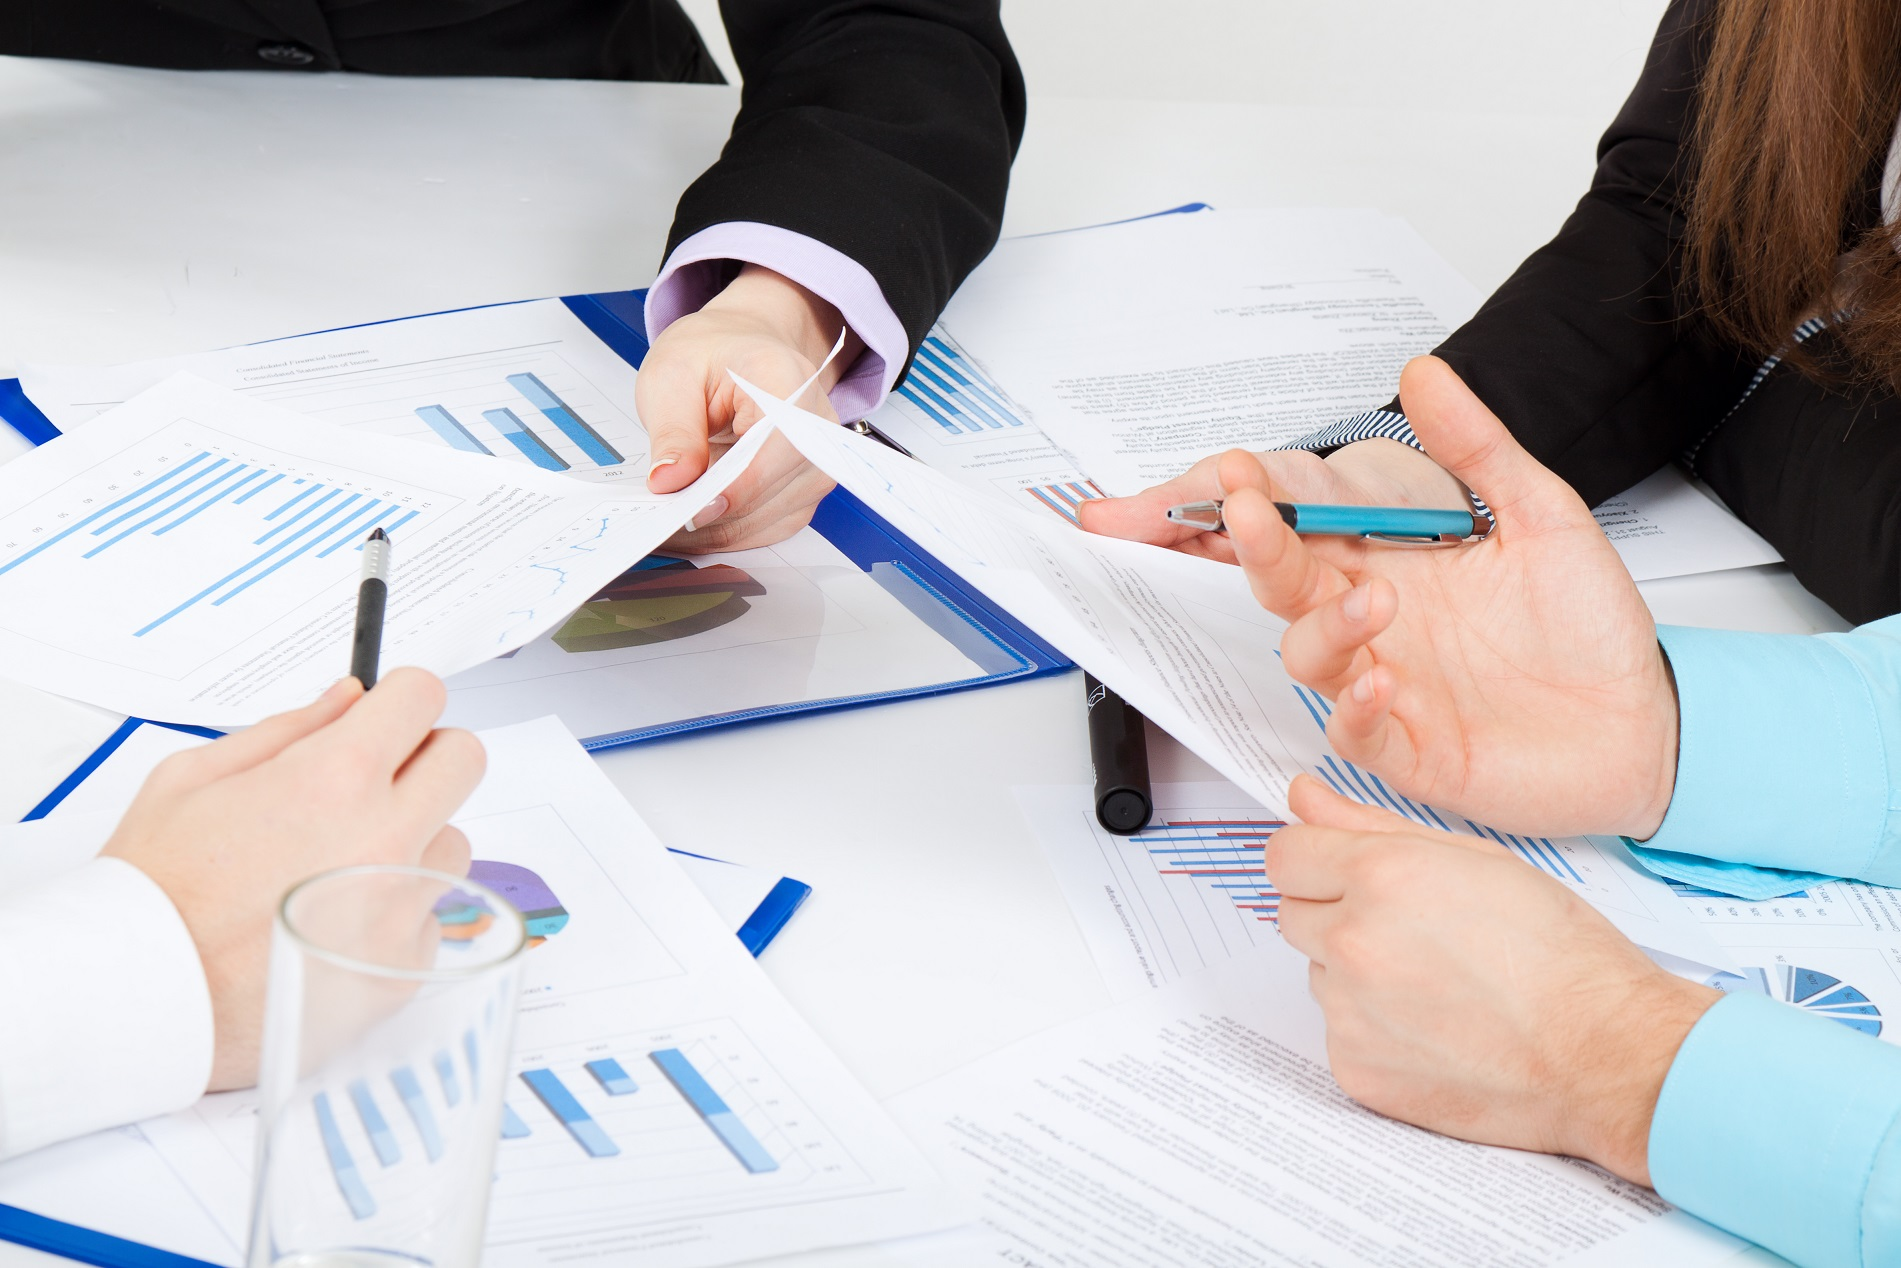 Businesspeople sitting at desk working in team together with documents sign up contract, businessmen holding financial charts, graph, folder with papers, explain business plan